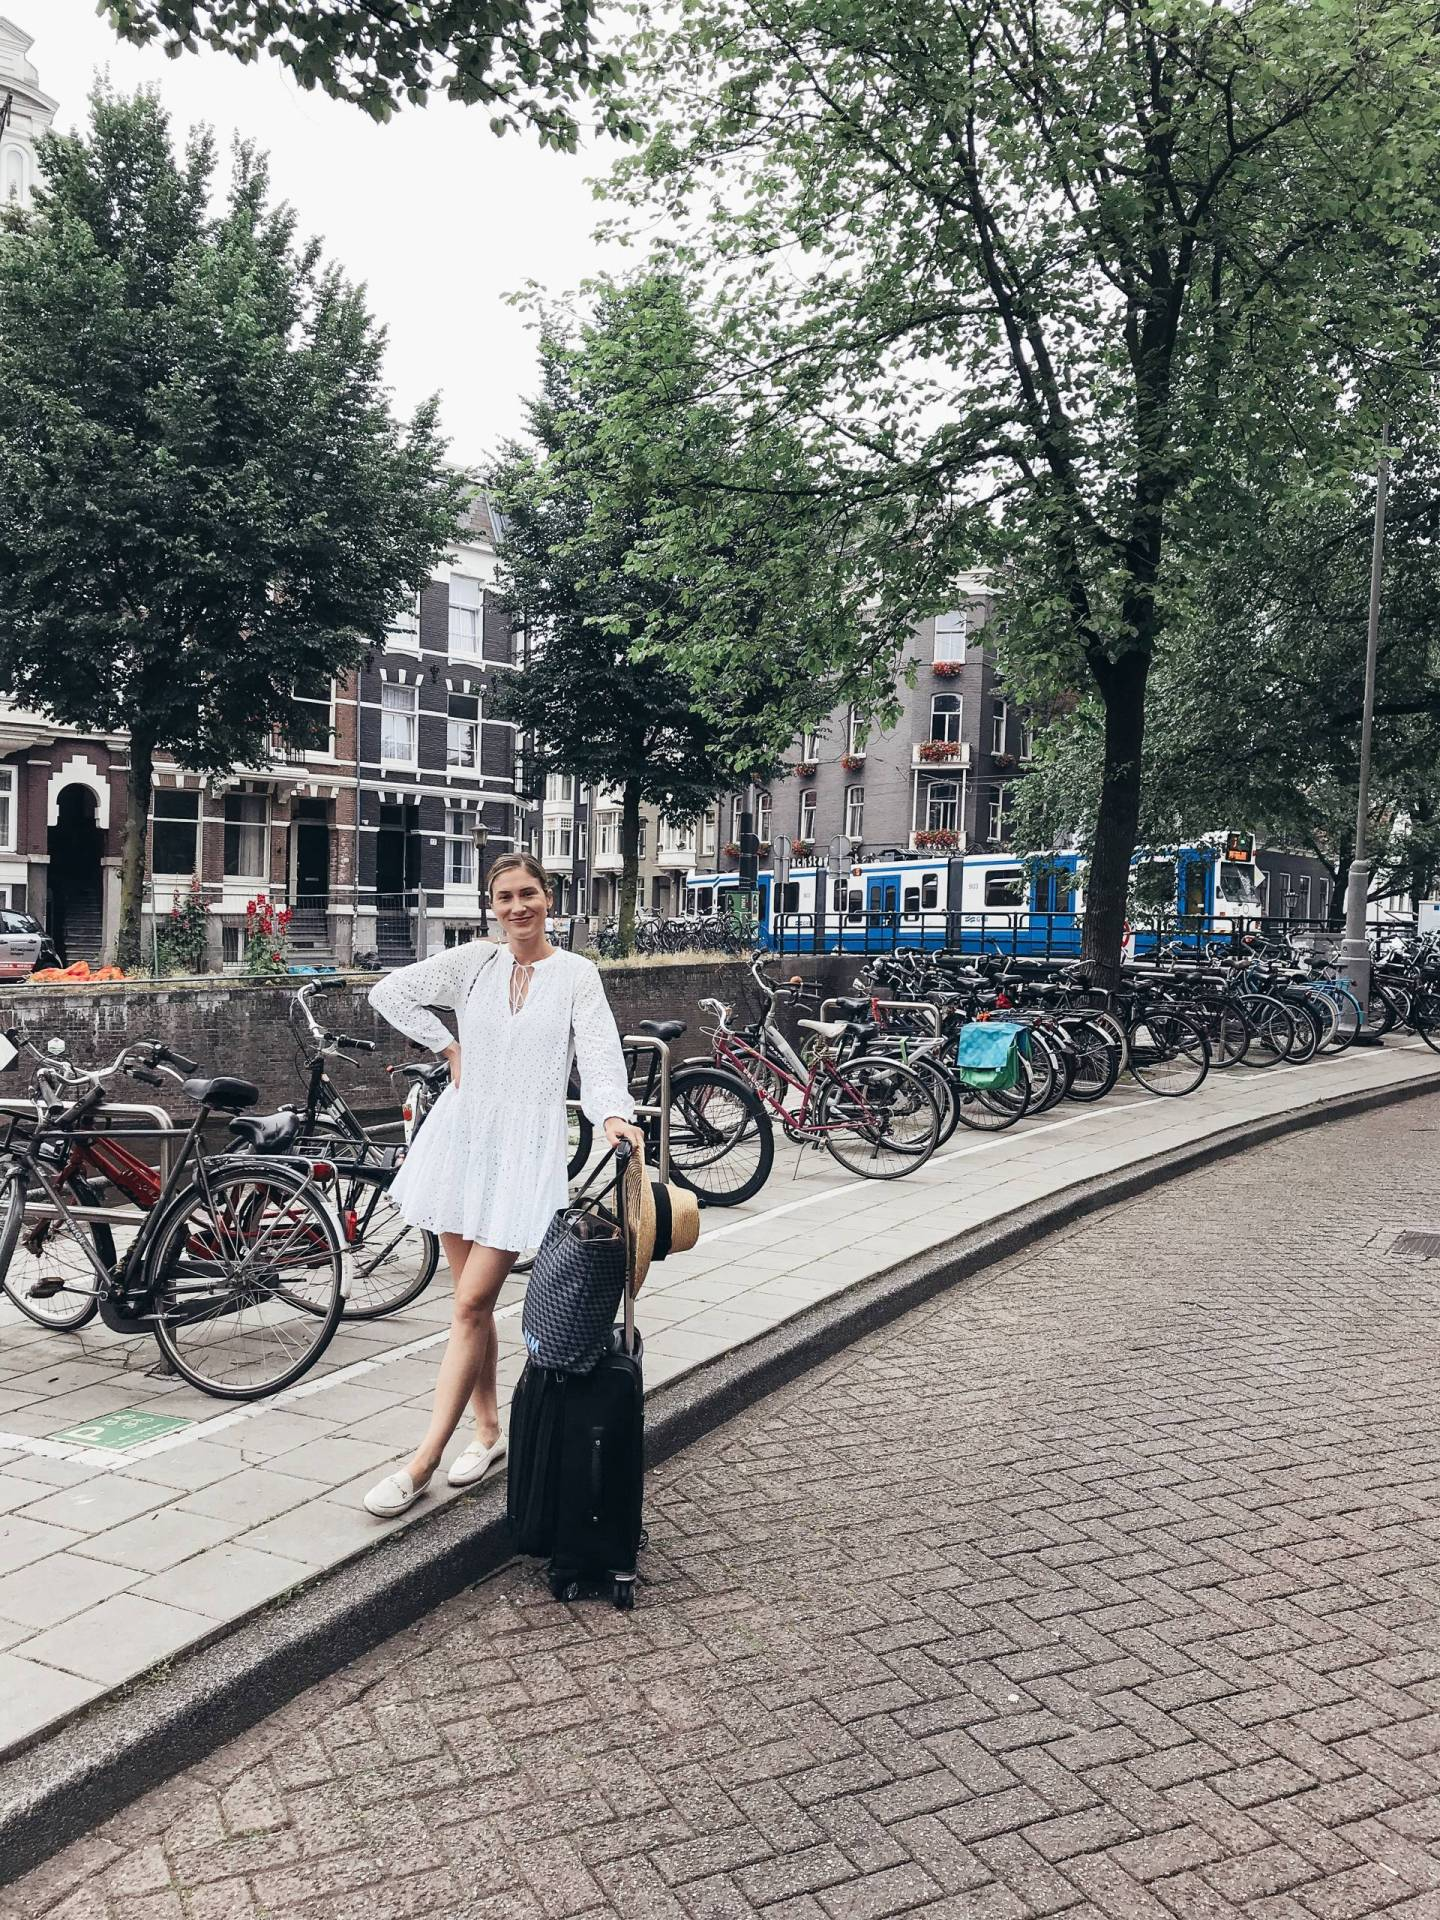 Planning a trip to Amsterdam? Click through for everything we did, where we ate, and where we stayed during our time in the city!